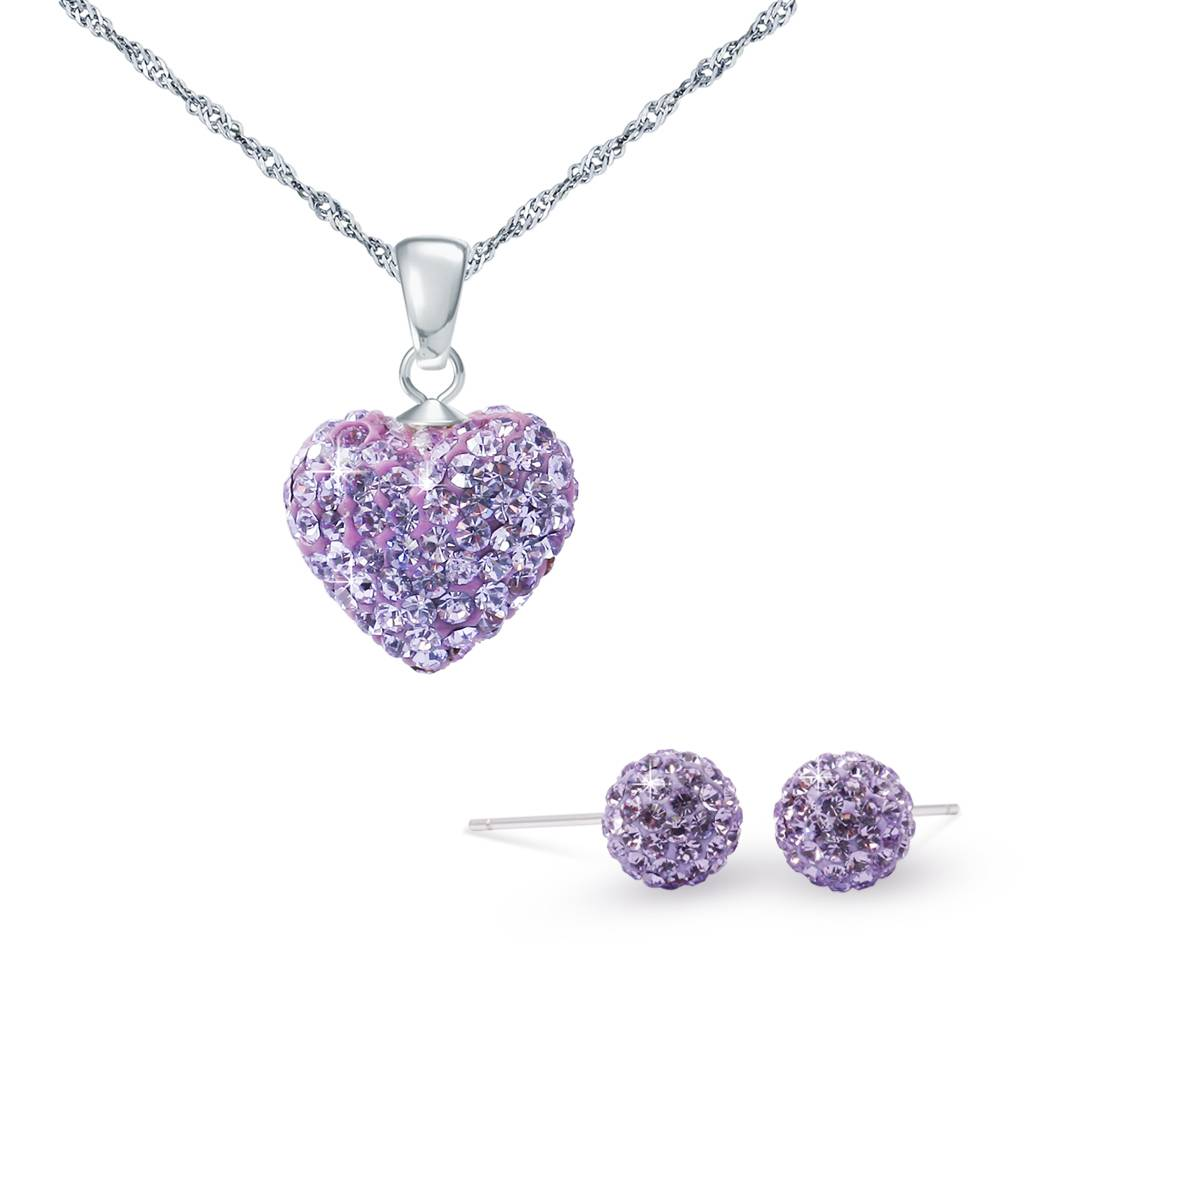 Charm Crystal jewelry set with 925 silver chain